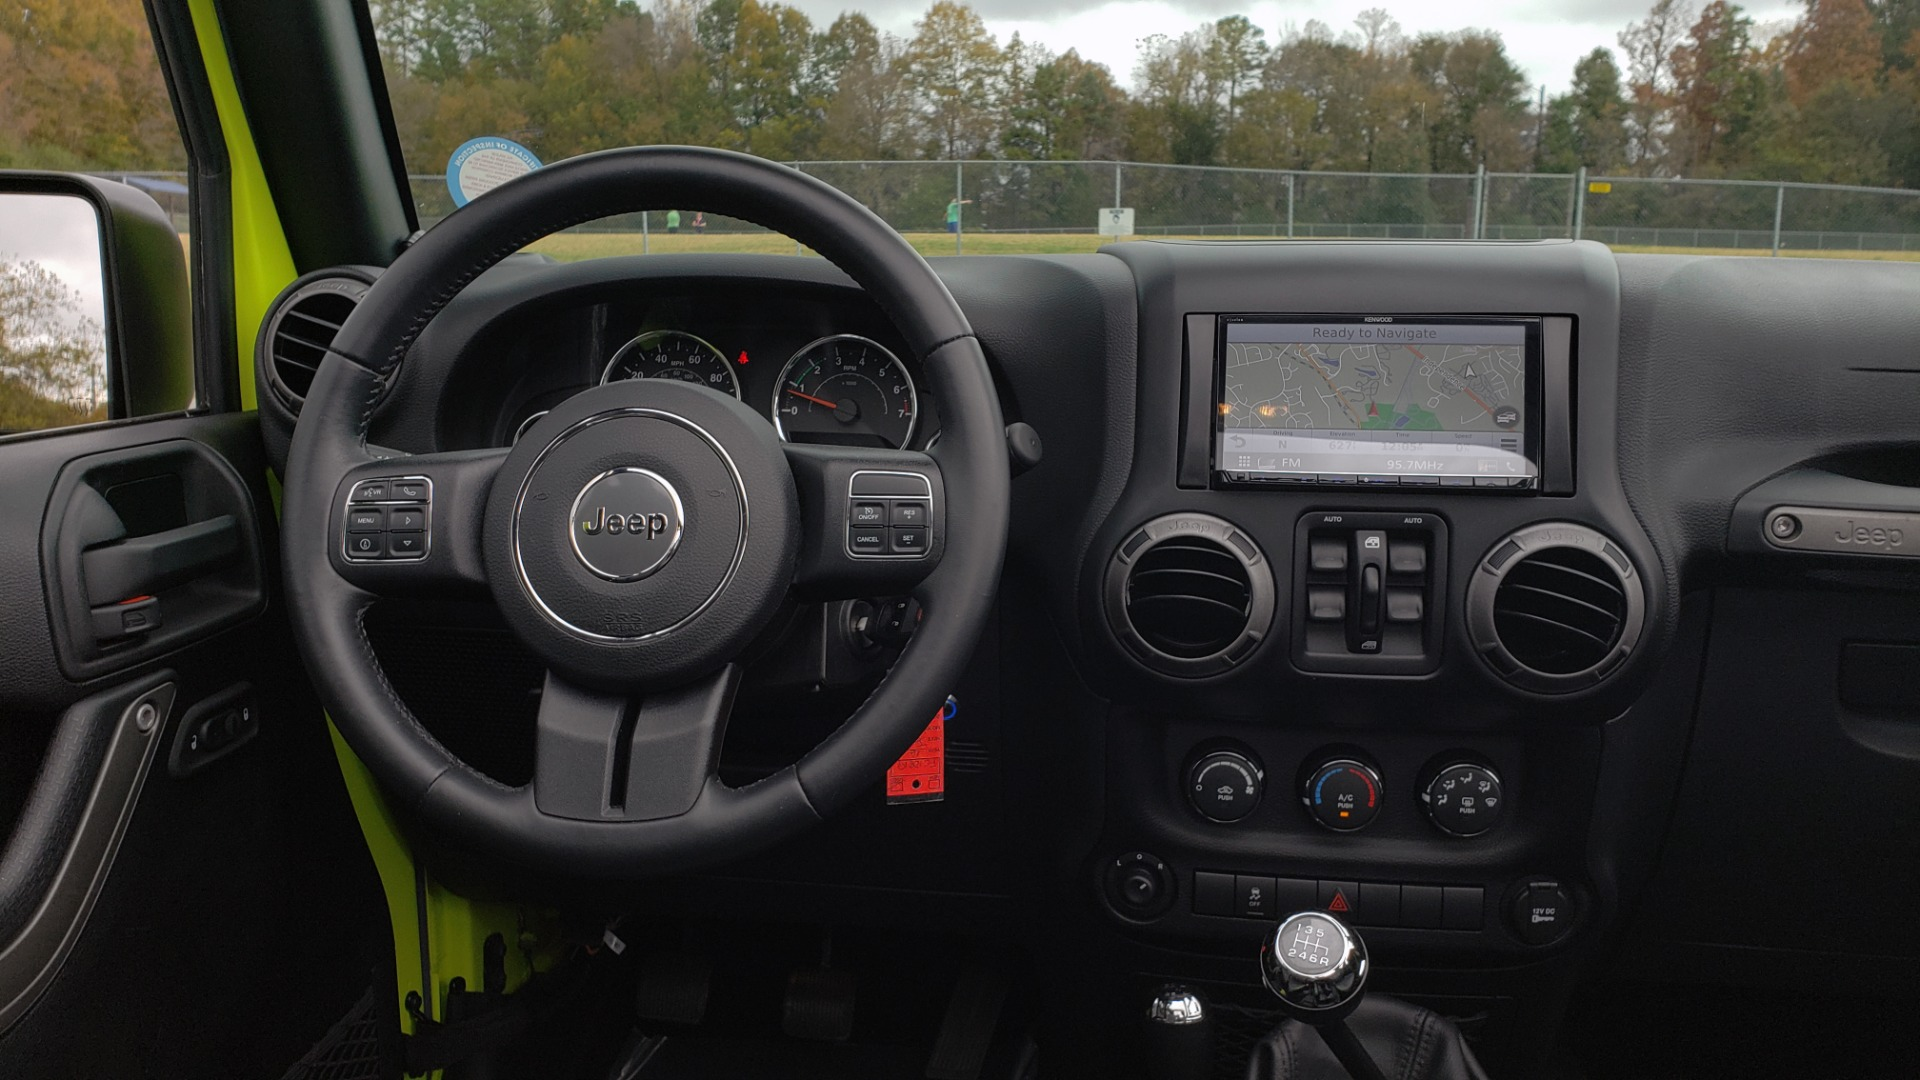 Used 2016 Jeep WRANGLER UNLIMITED SPORT 4X4 / POWER TOP / NAV / HTD STS / REARVIEW for sale $36,999 at Formula Imports in Charlotte NC 28227 83